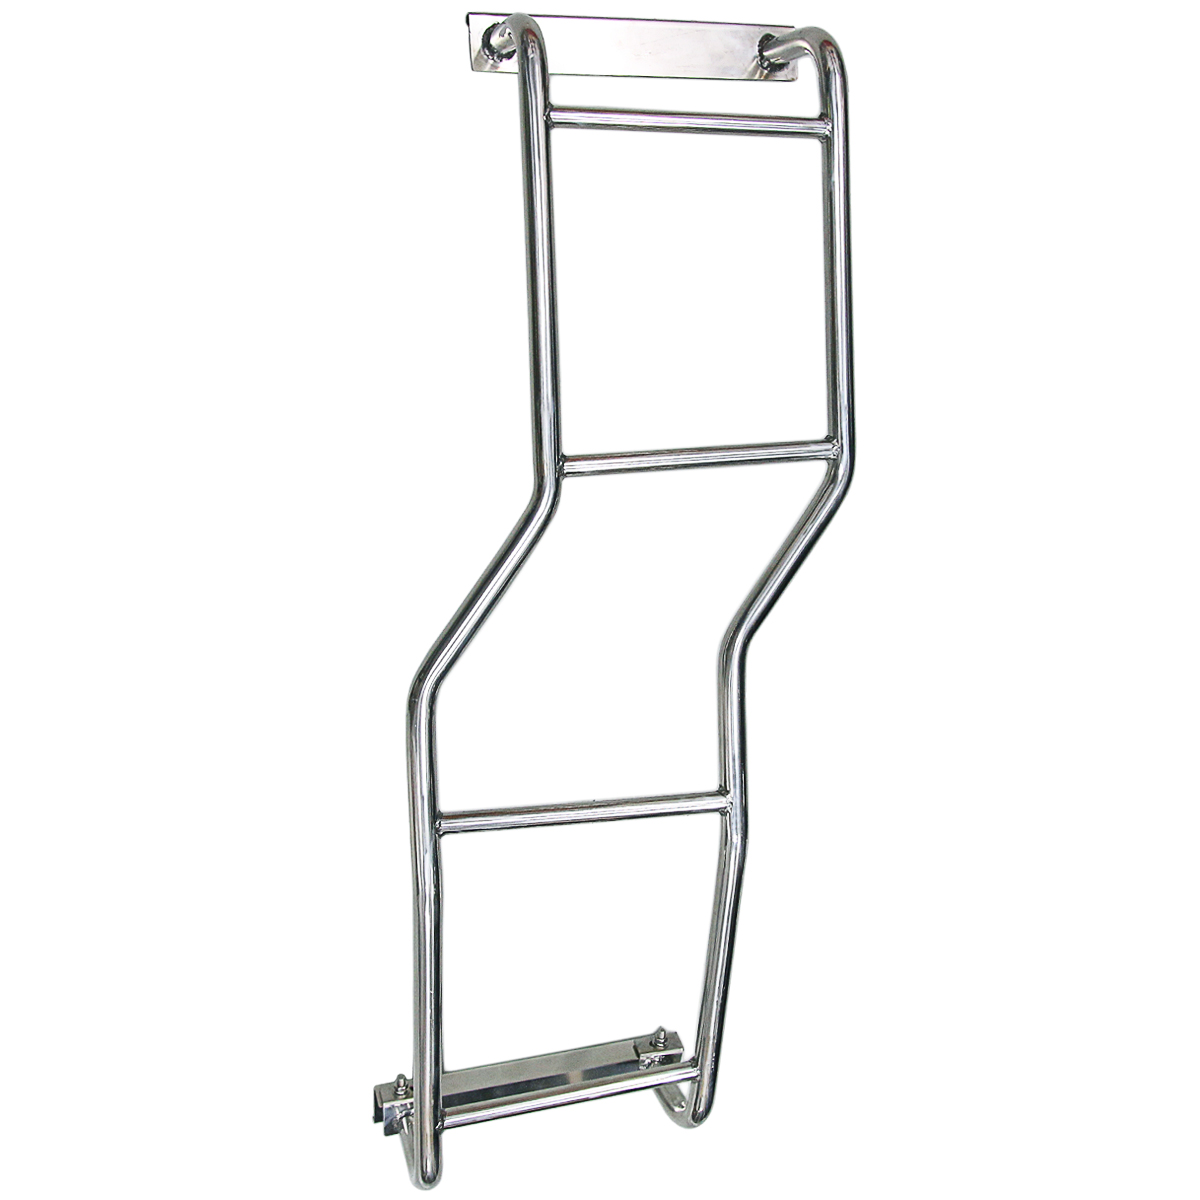 1x Rear Stainless Steel Roof Ladder For Mitsubishi Pajero